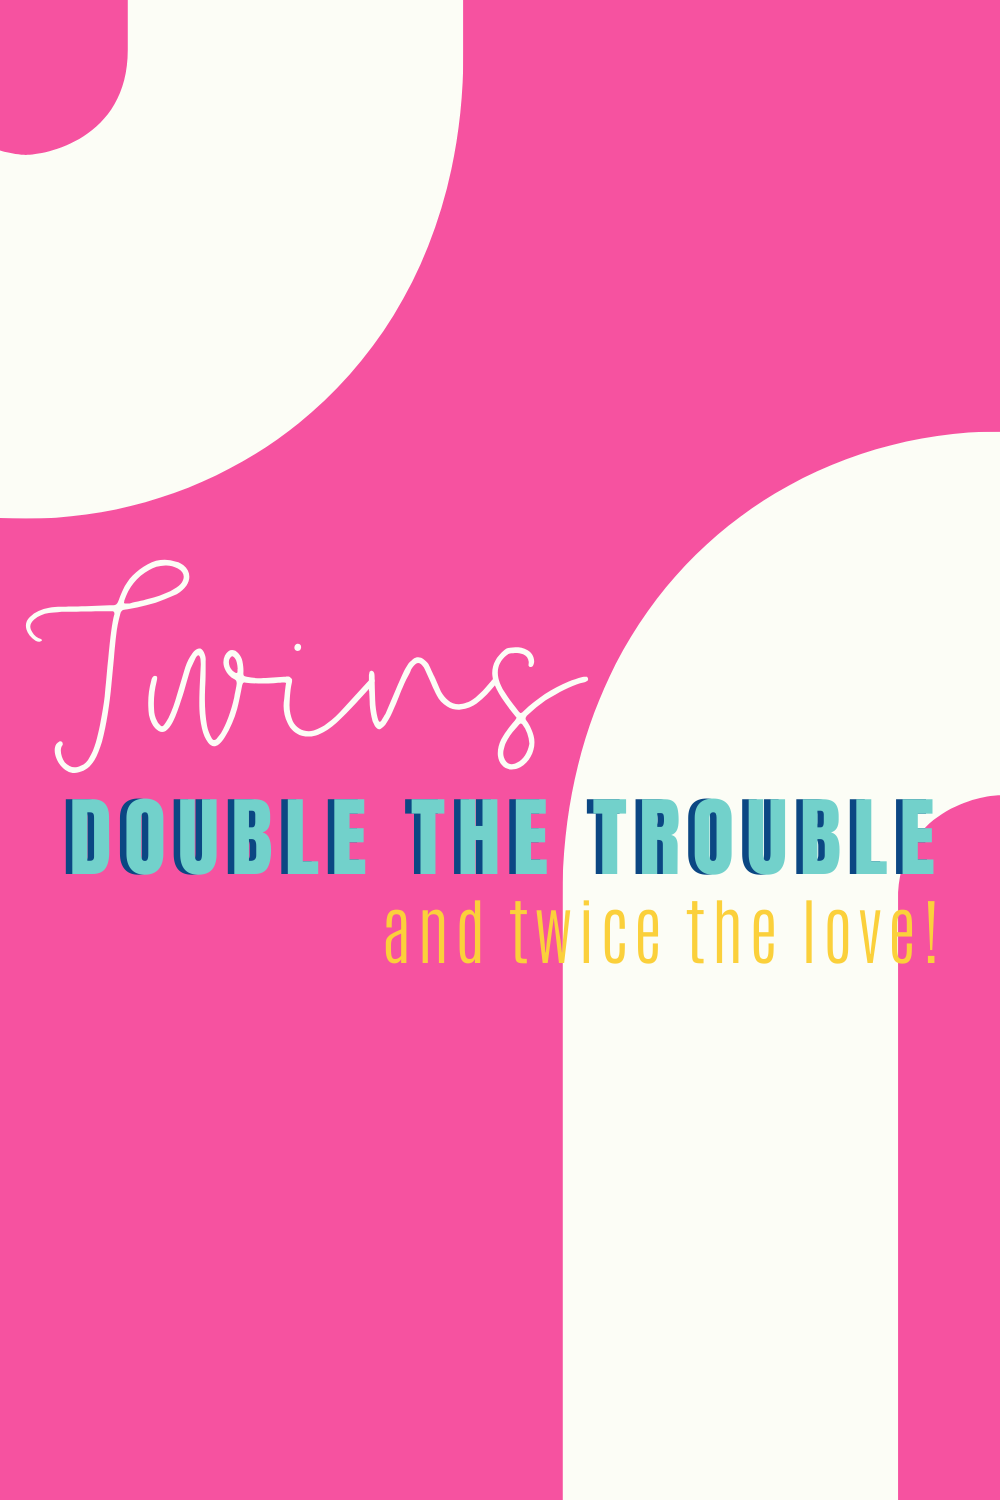 Double the trouble Funny twins baby shower prints for decorations